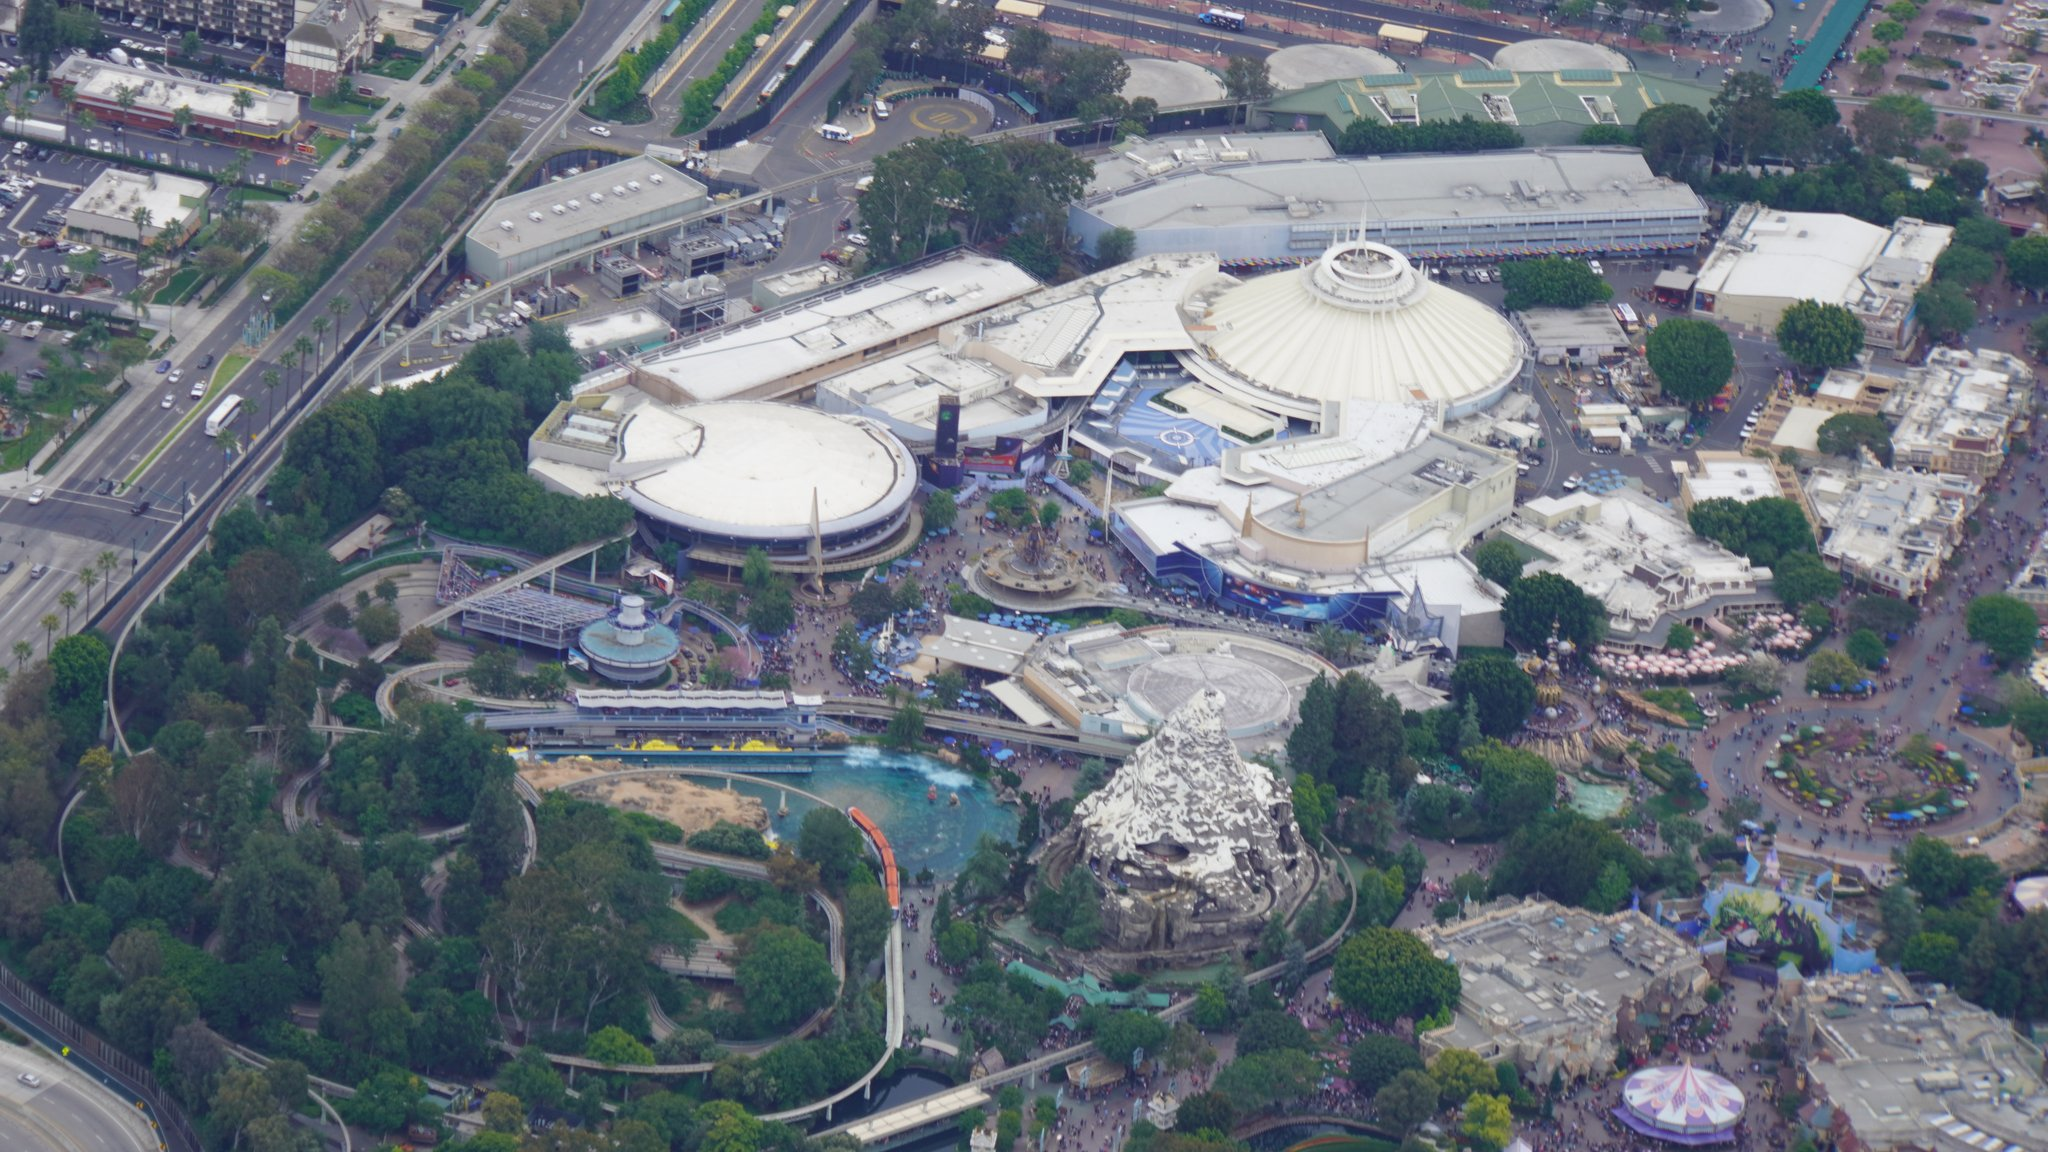 Disneyland Resort vu du ciel, des images sublimes! D6CL044UEAAm1o2